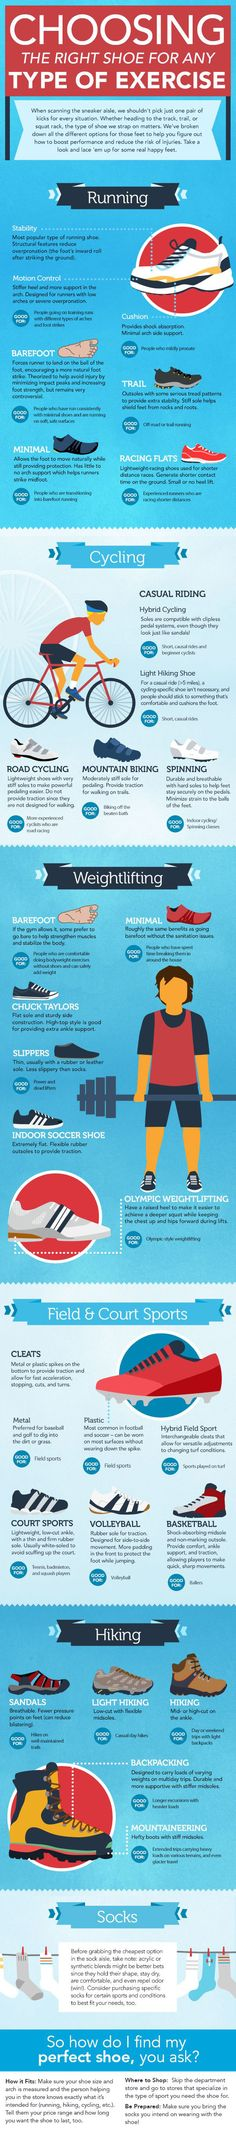 Types of shoes for different workouts